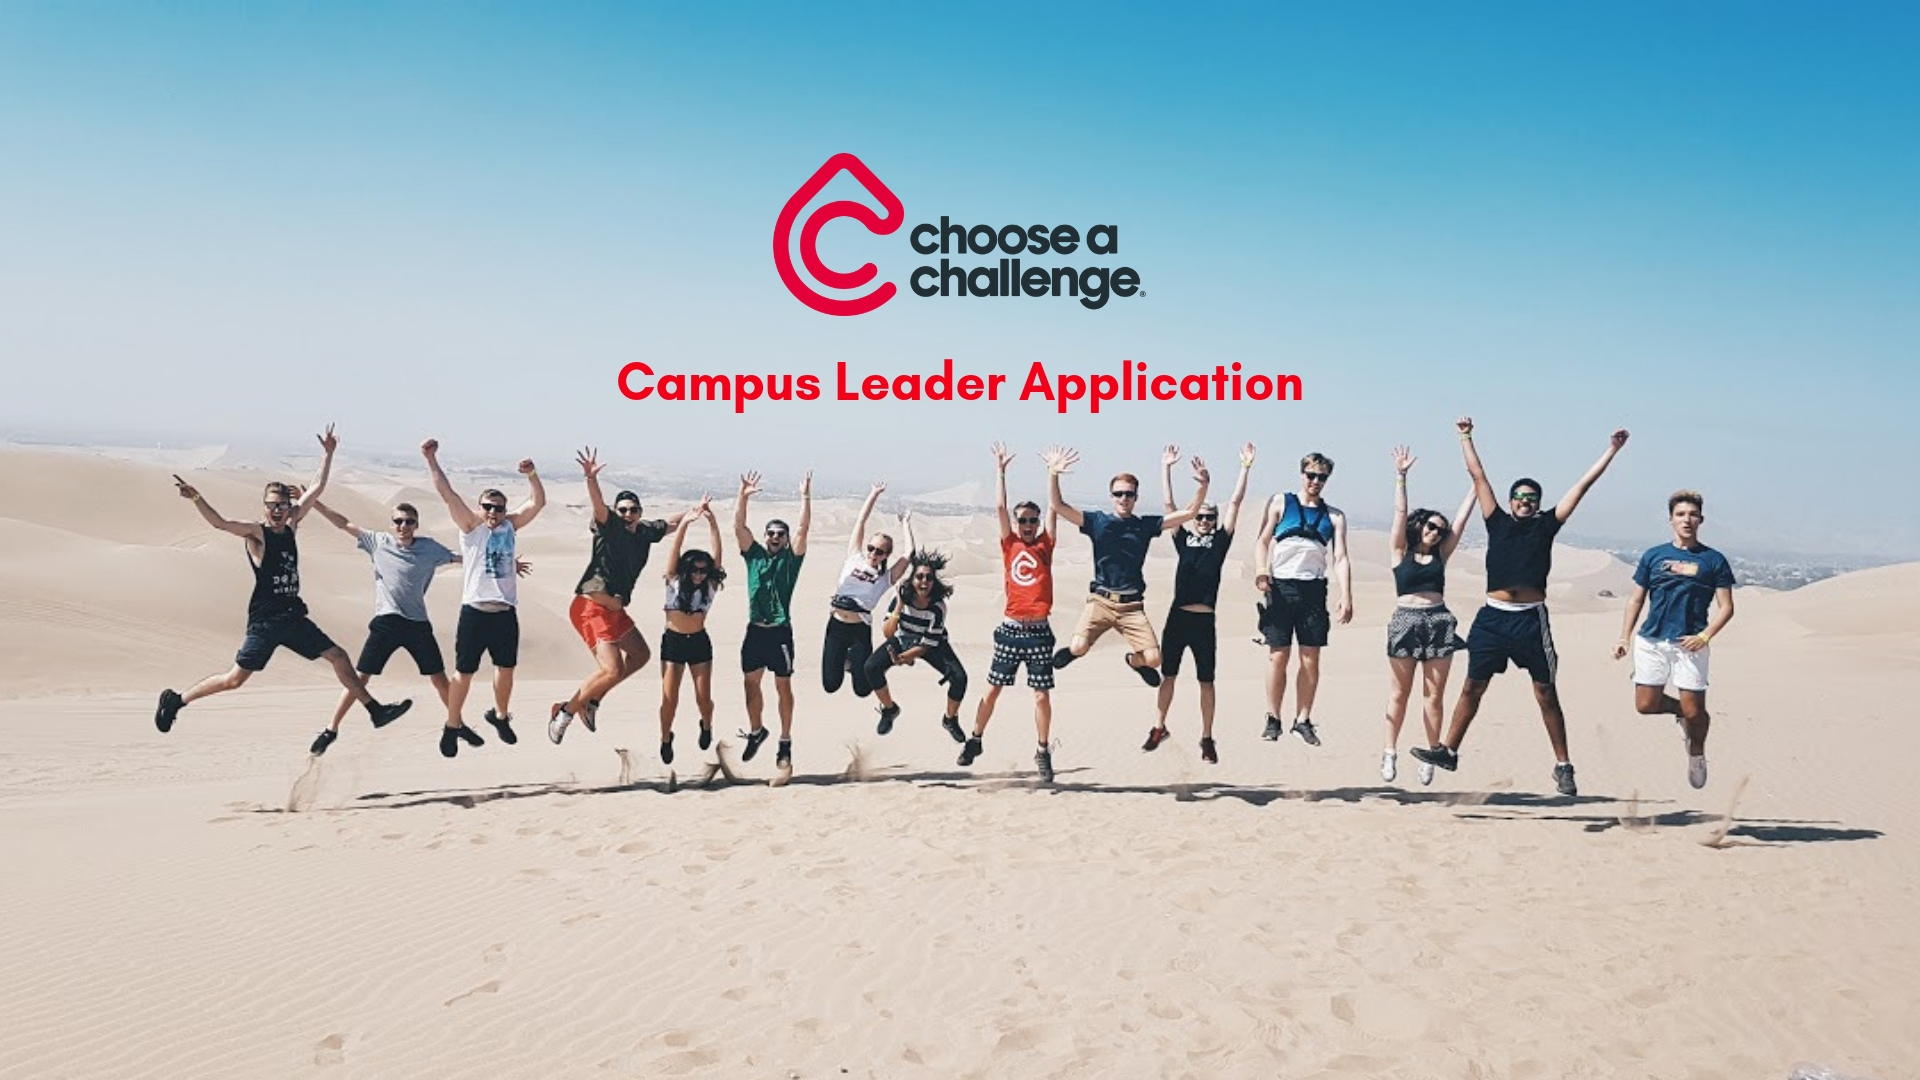 Campus Leader Application (4).jpg